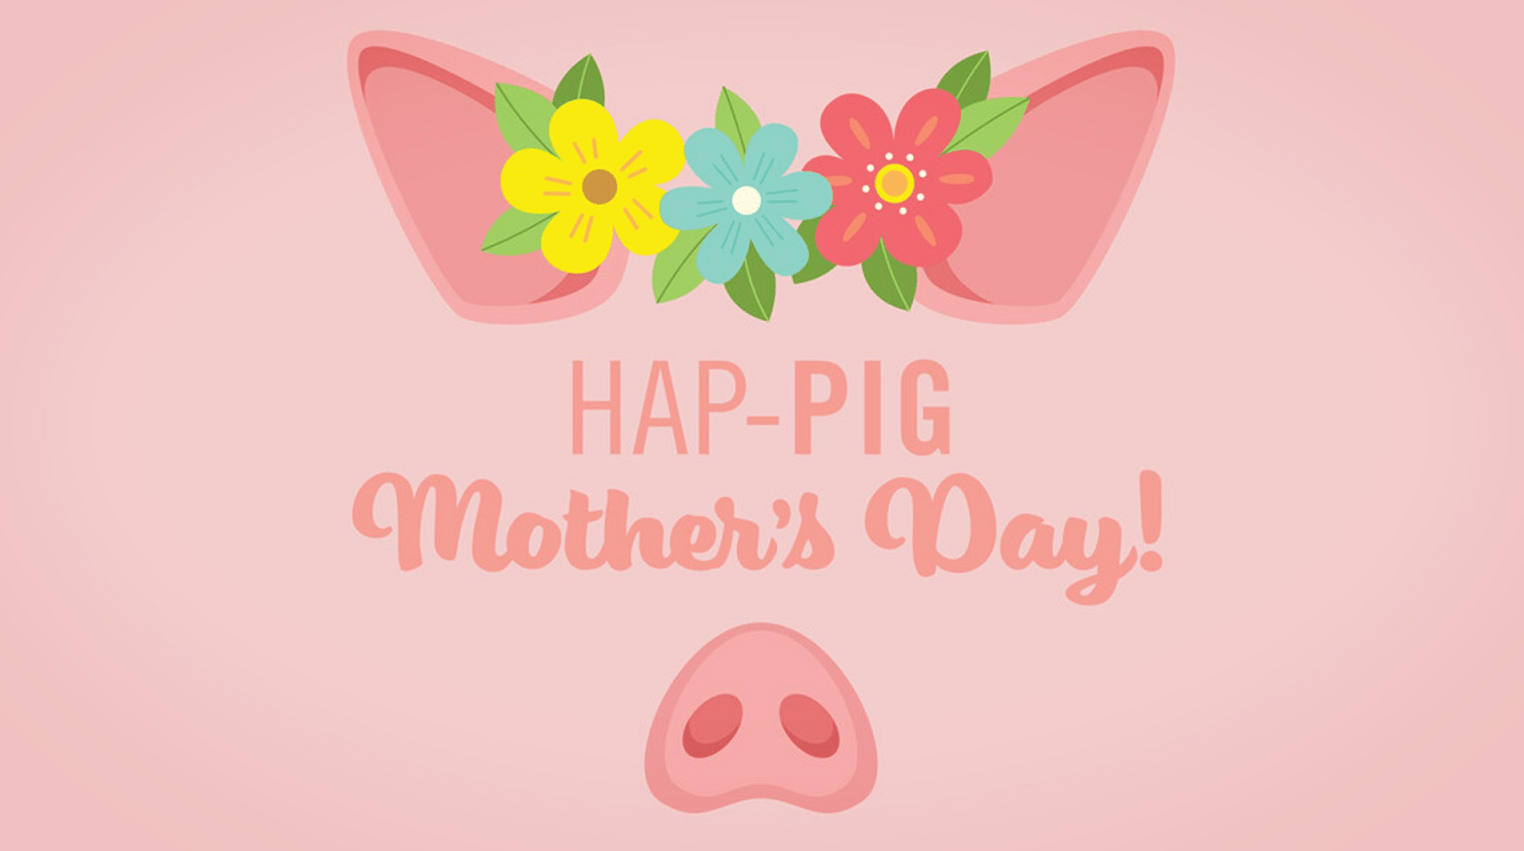 hap pig mother's day_1557258963087.PNG.jpg